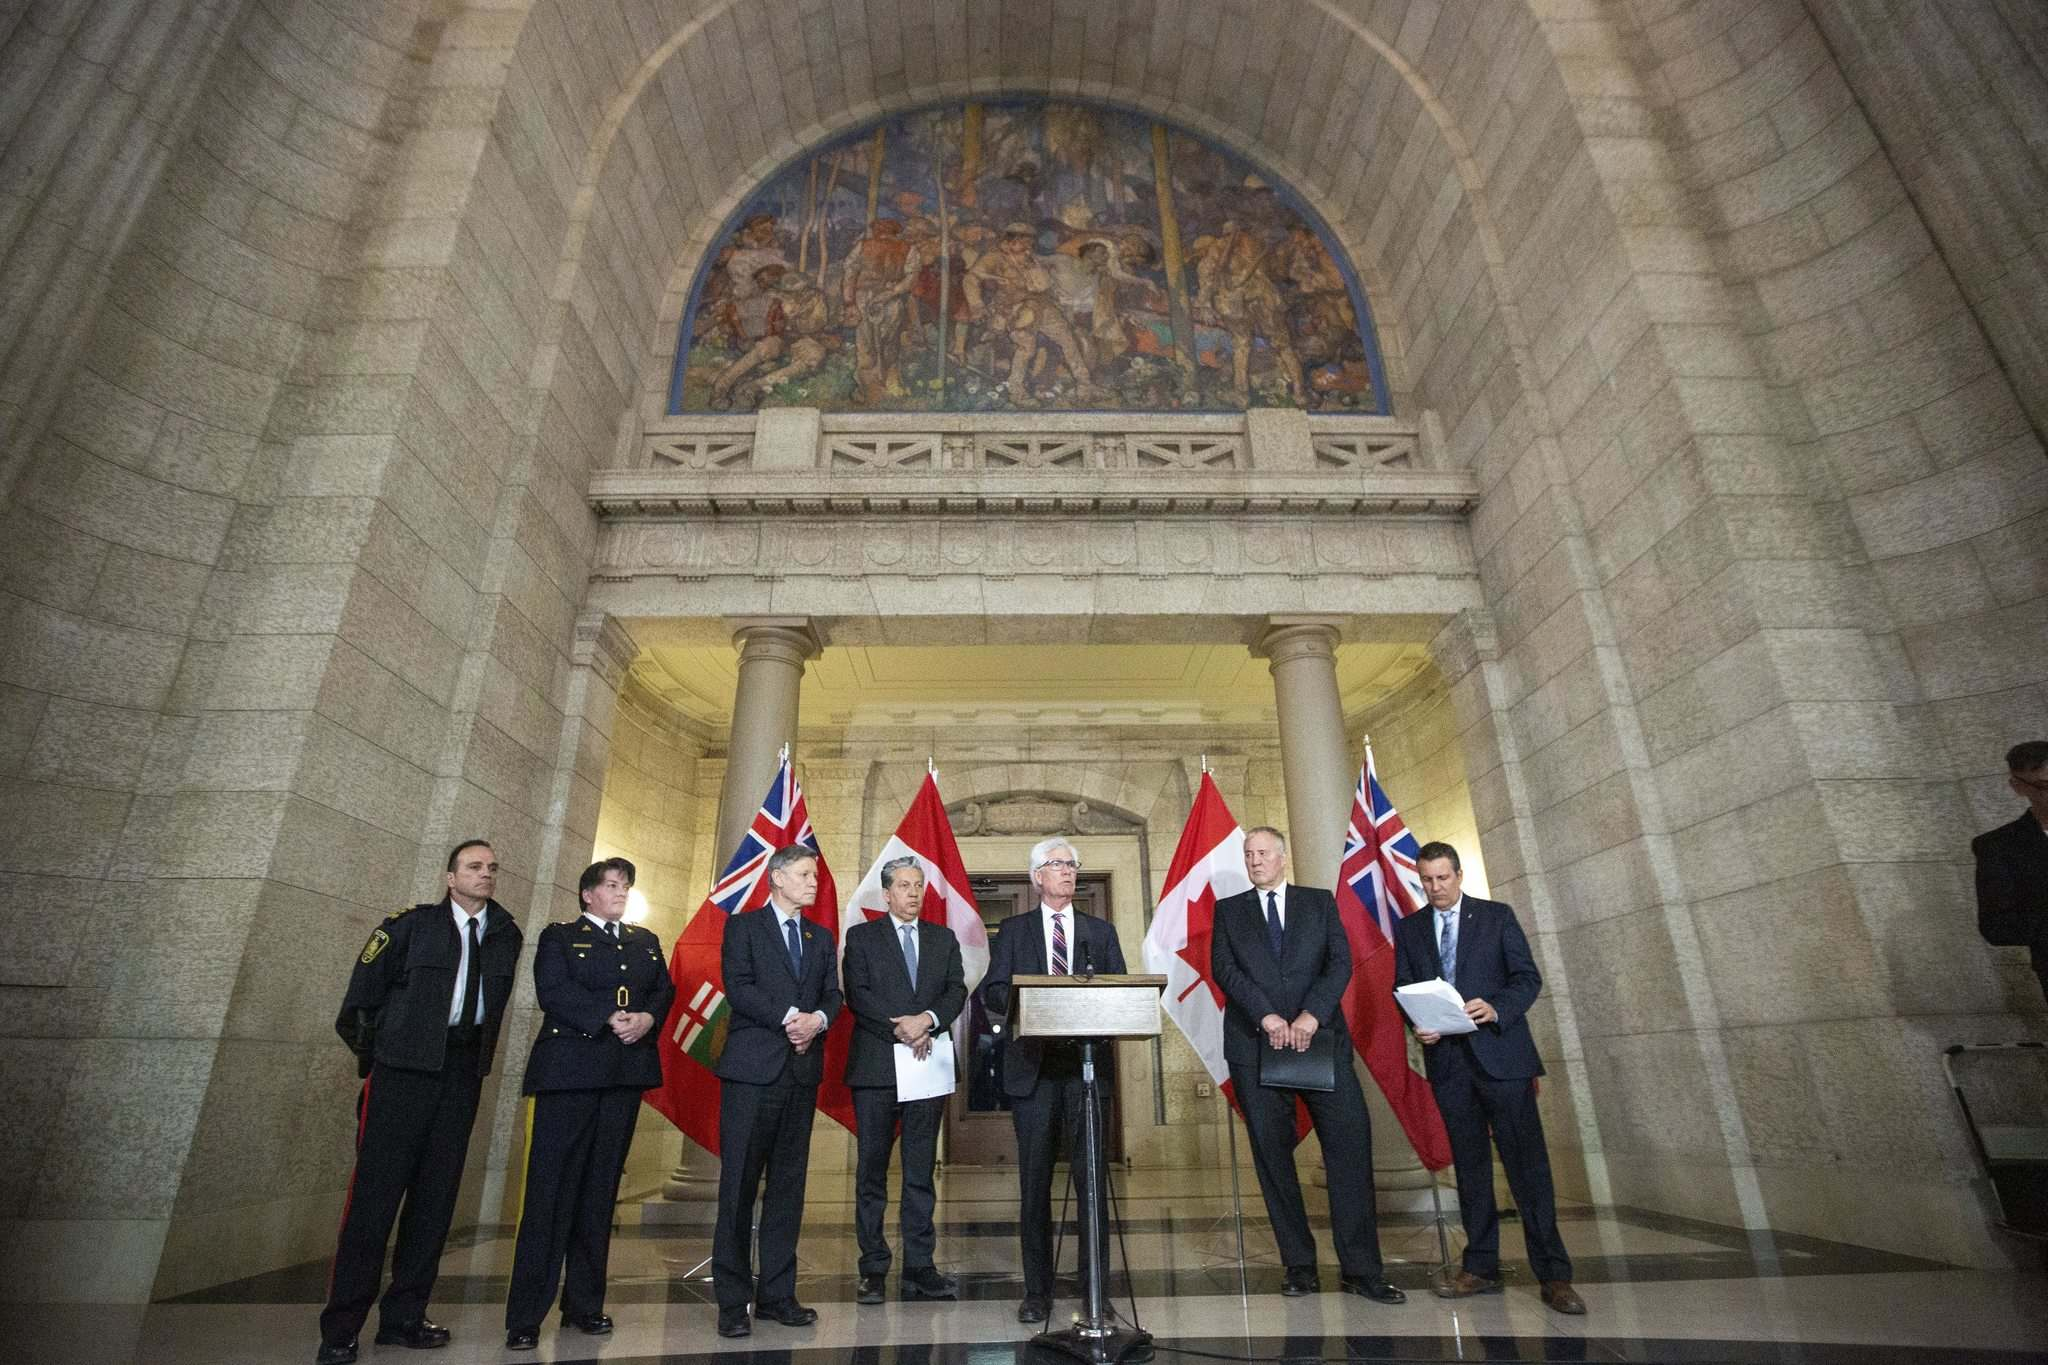 MIKAELA MACKENZIE/WINNIPEG FREE PRESS Minister of International Trade Diversification Jim Carr announces funding for gun and gang violence prevention along with Winnipeg police Chief Danny Smyth (from left), Assistant Commissioner Jane MacLatchy, MP Terry Duguid, MP Dan Vandal, Minister of Border Security and Organized Crime Reduction Bill Blair, and Minister of Justice Cliff Cullen at the Manitoba Legislative Building in Winnipeg on Friday. </p>